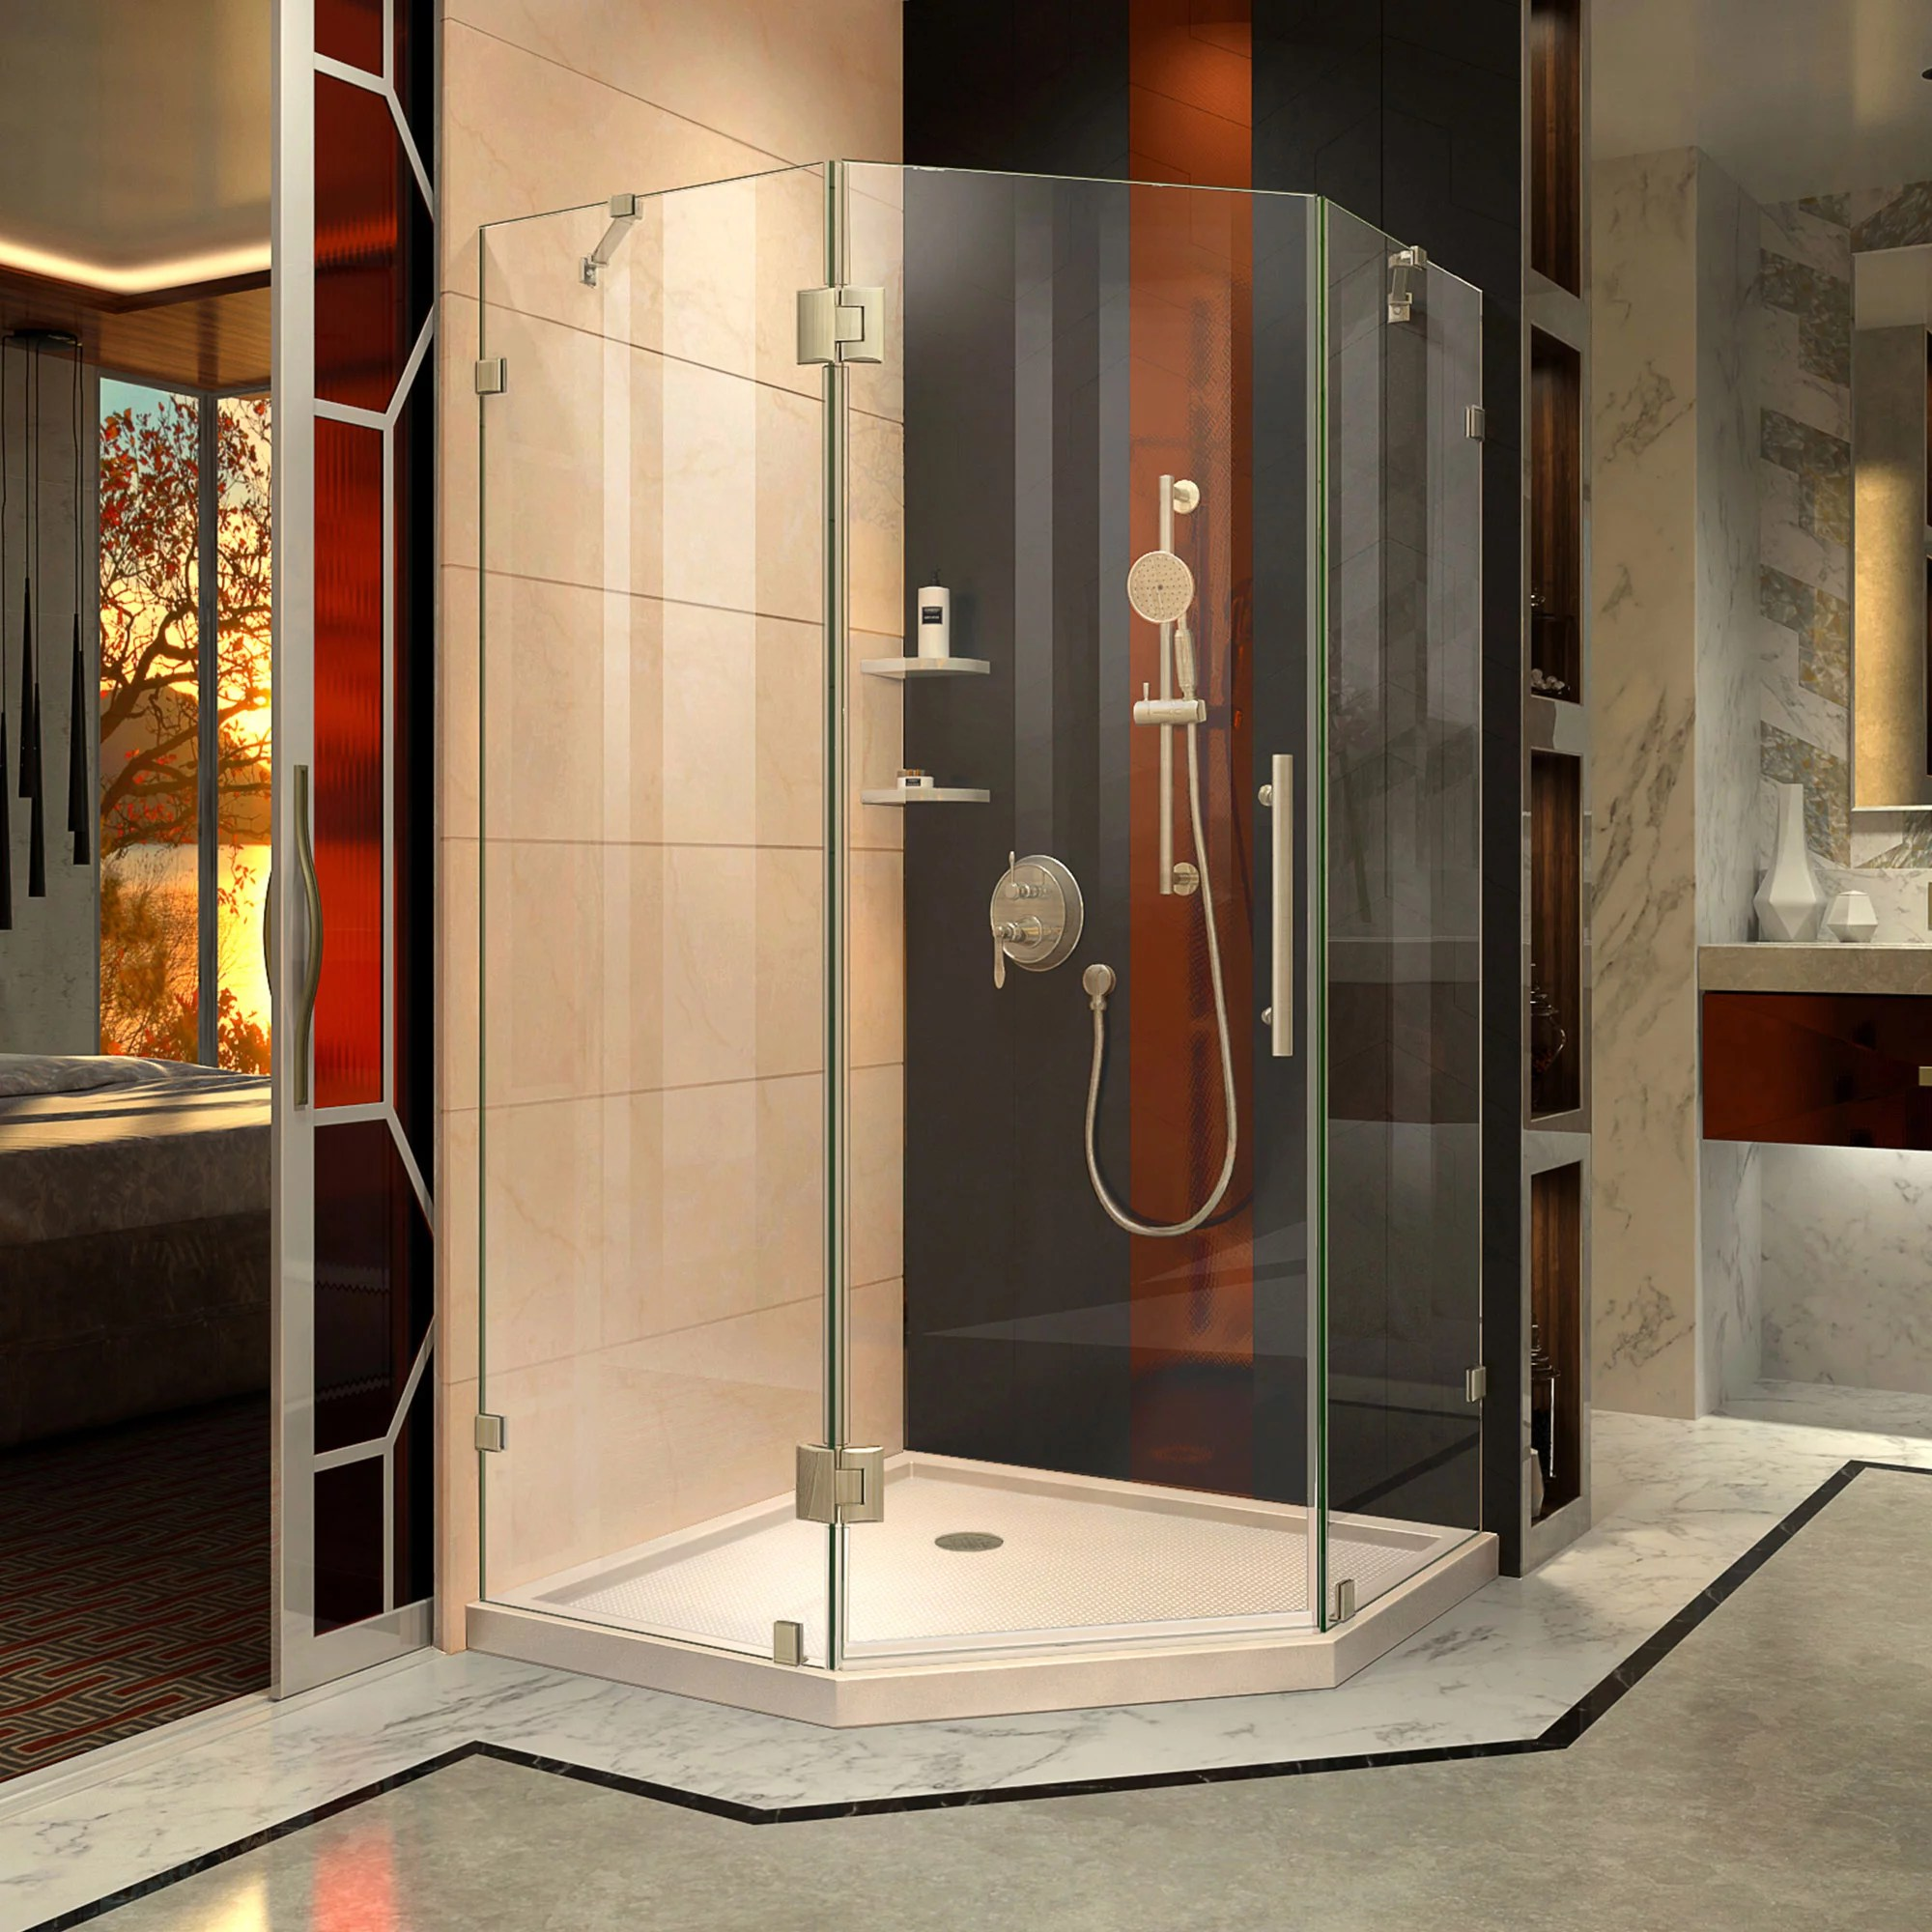 Dreamline Prism Lux 38 In X 74 3 4 In Fully Frameless Neo Angle Shower Enclosure In Brushed Nickel With Biscuit Base